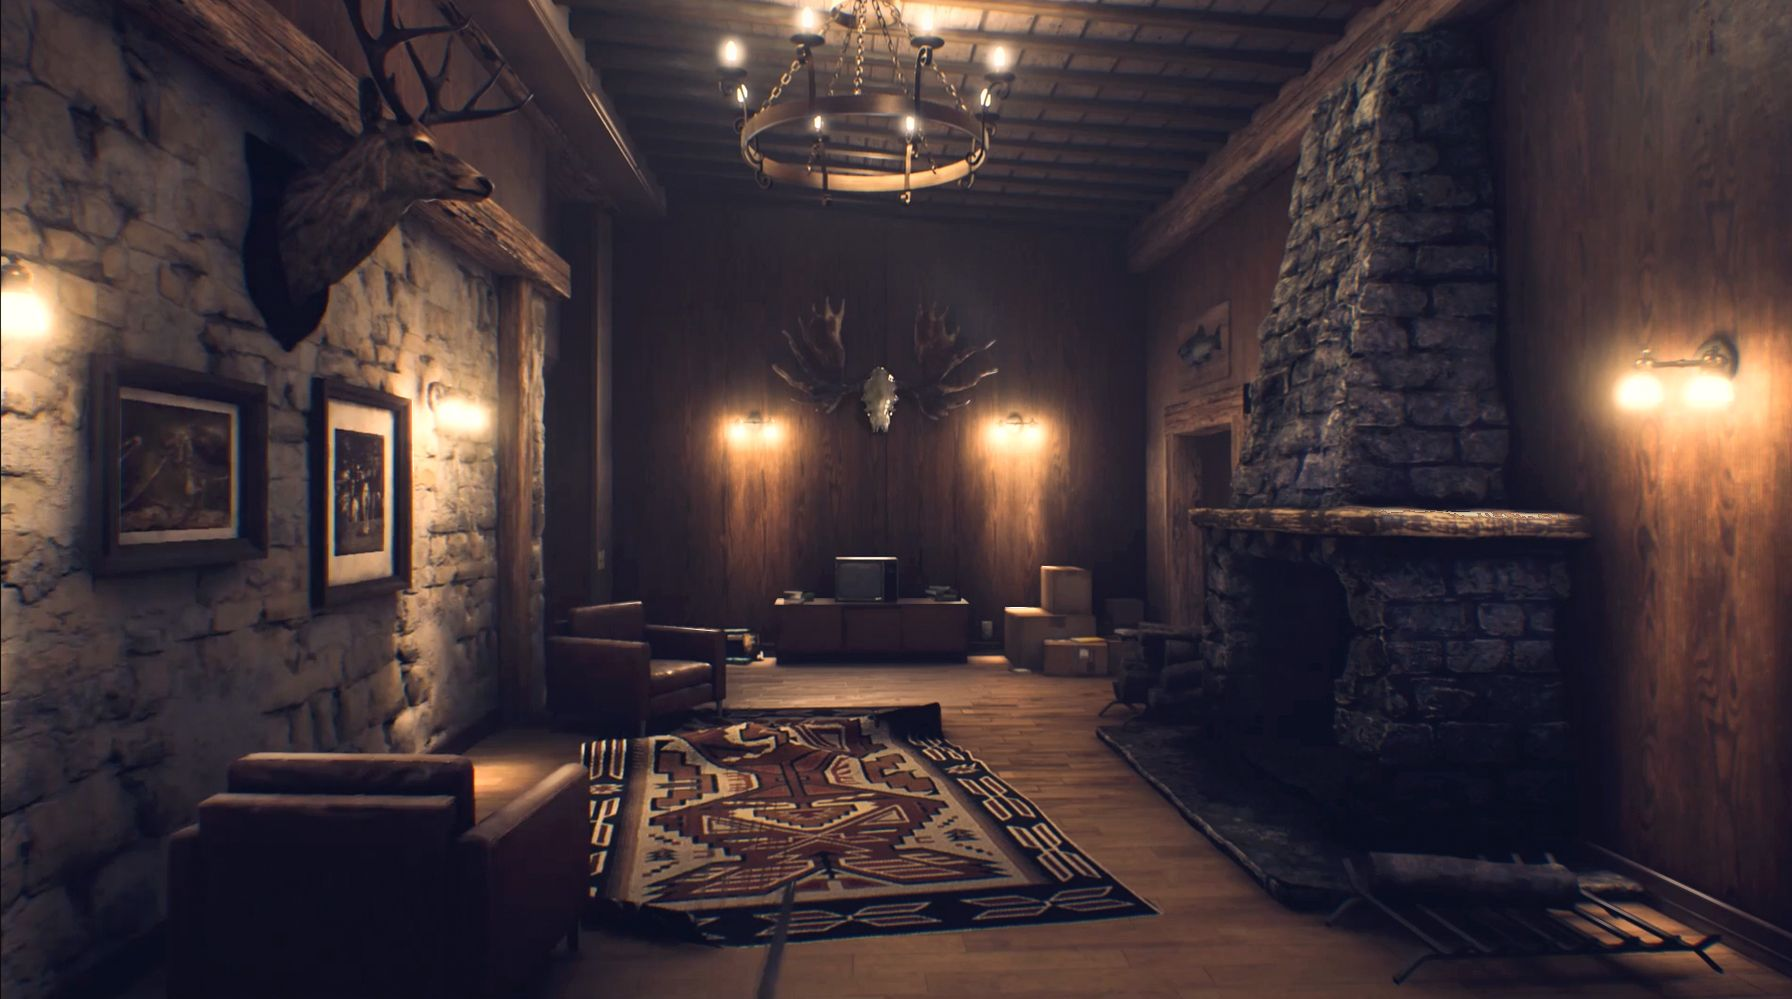 A room with taxidermy and a fire place